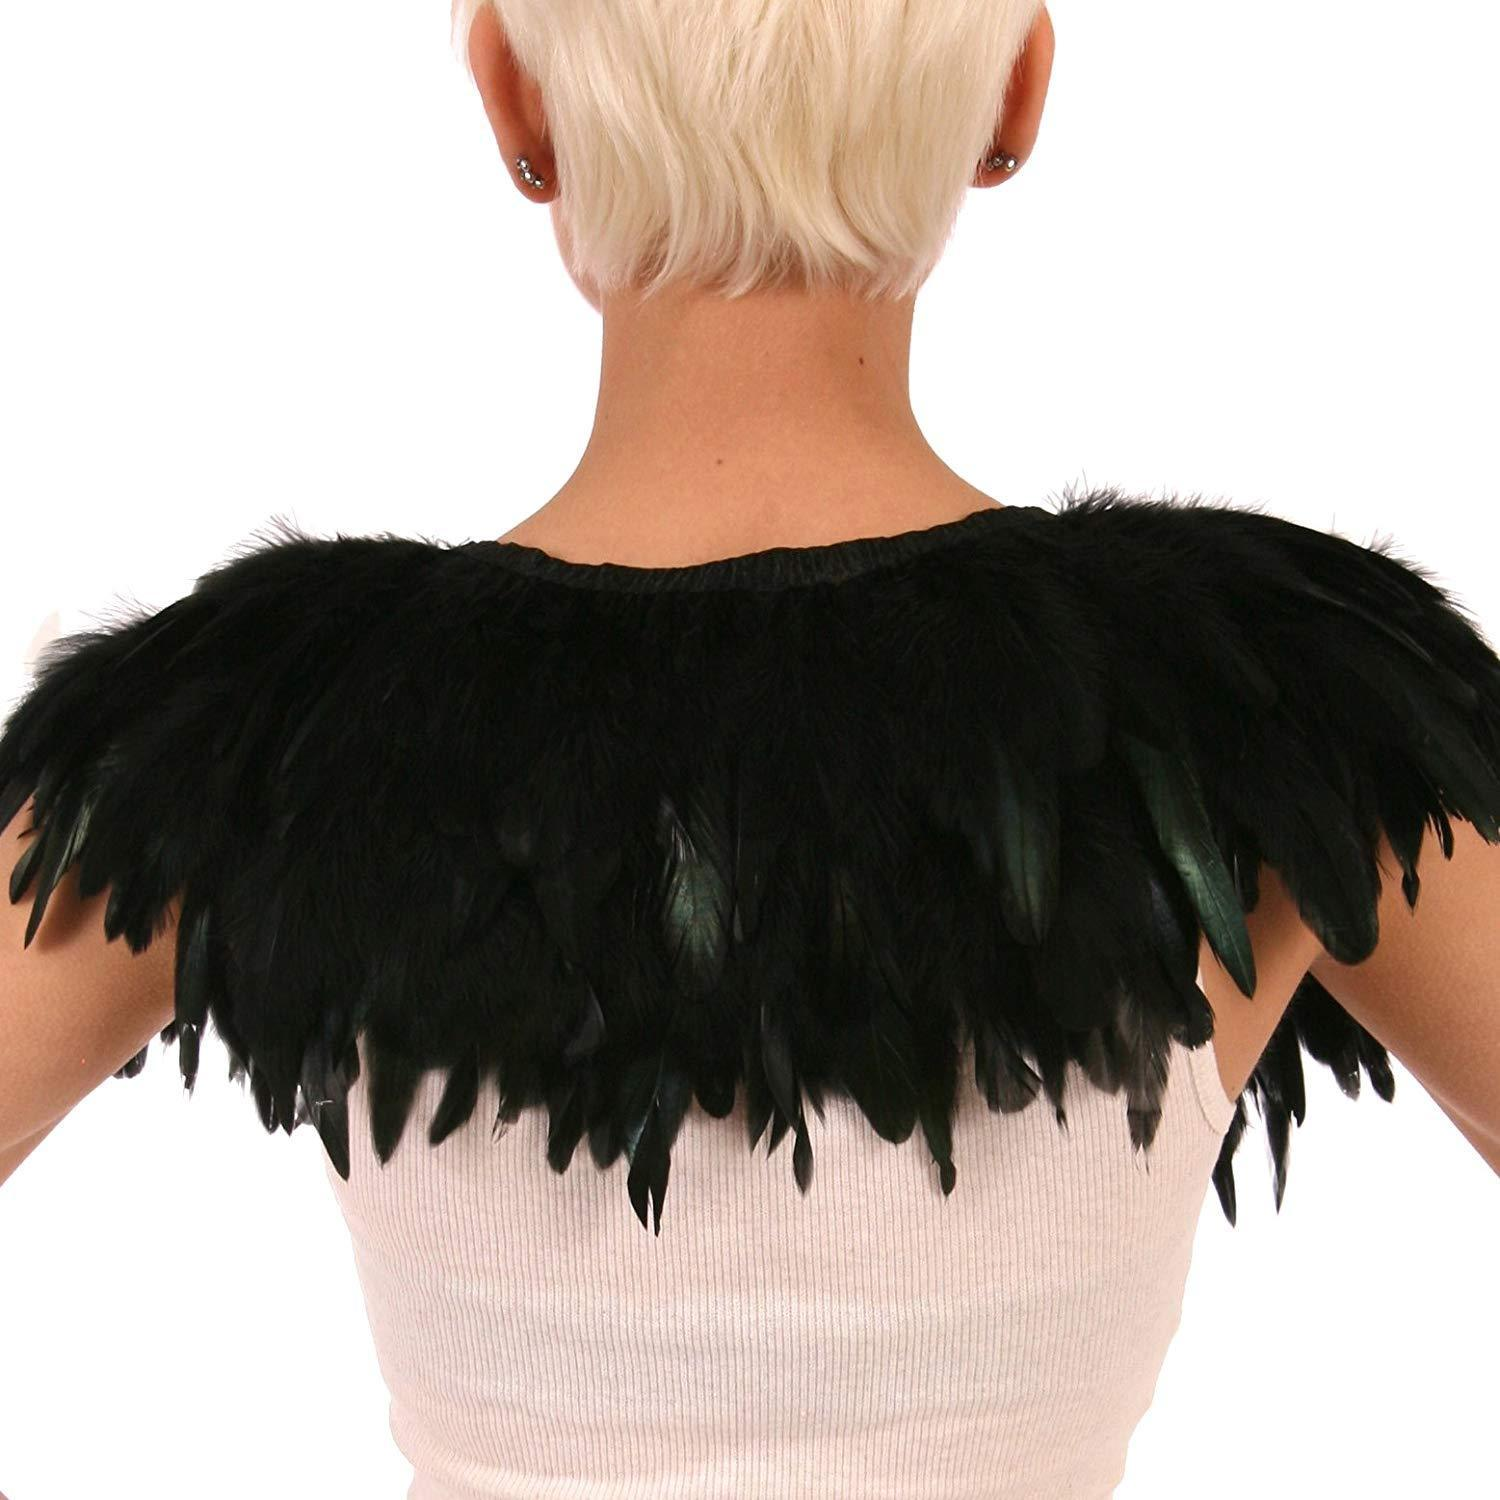 Black Feather Cape Halloween Costume Accessory - Backside